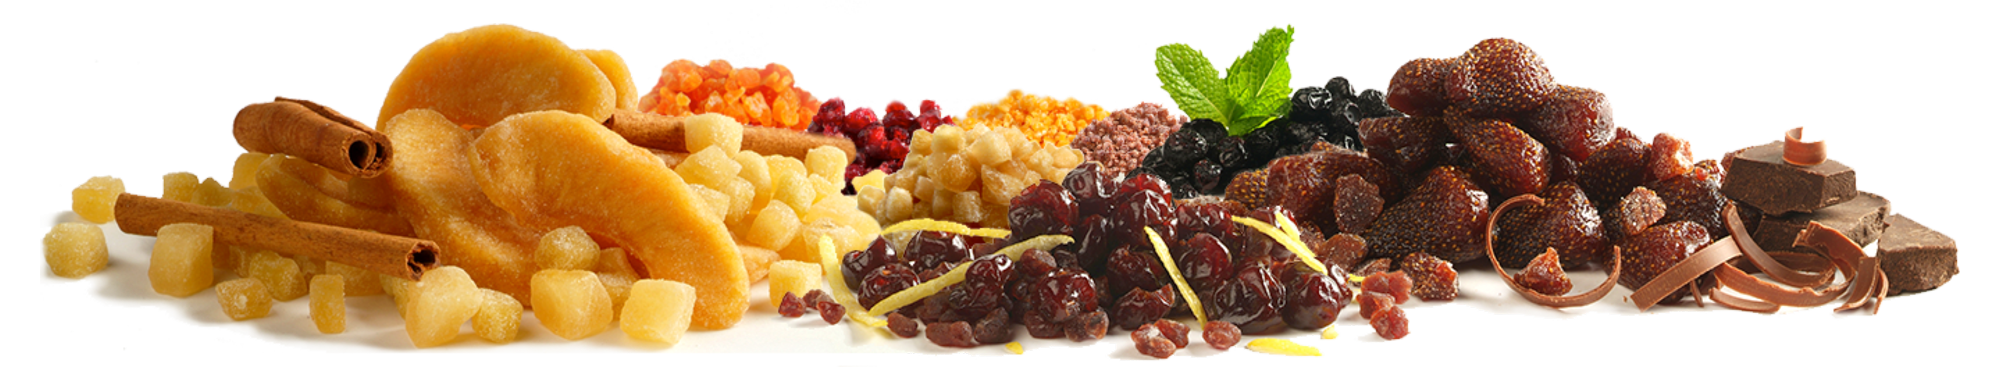 Home meduri farms natural dried fruits - Dried fruit business ...